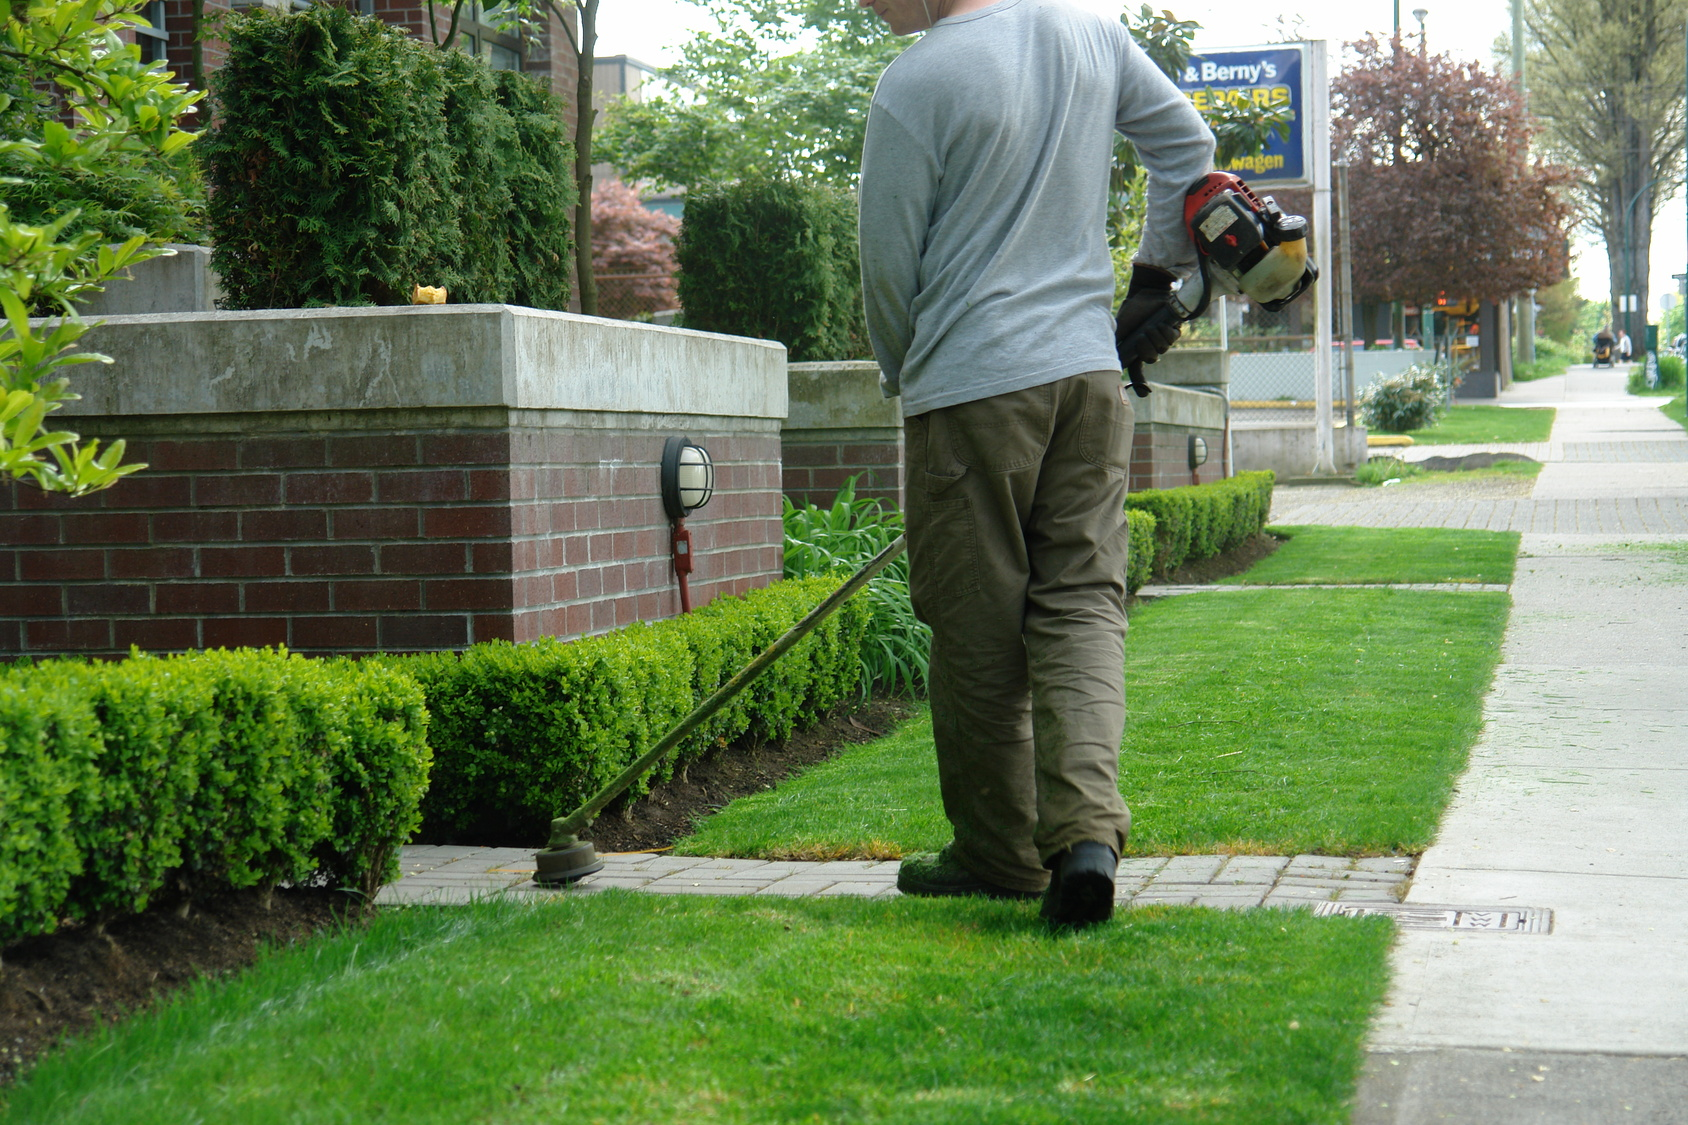 Lawn yard maintenance services lake country kelowna for Lawn care and maintenance